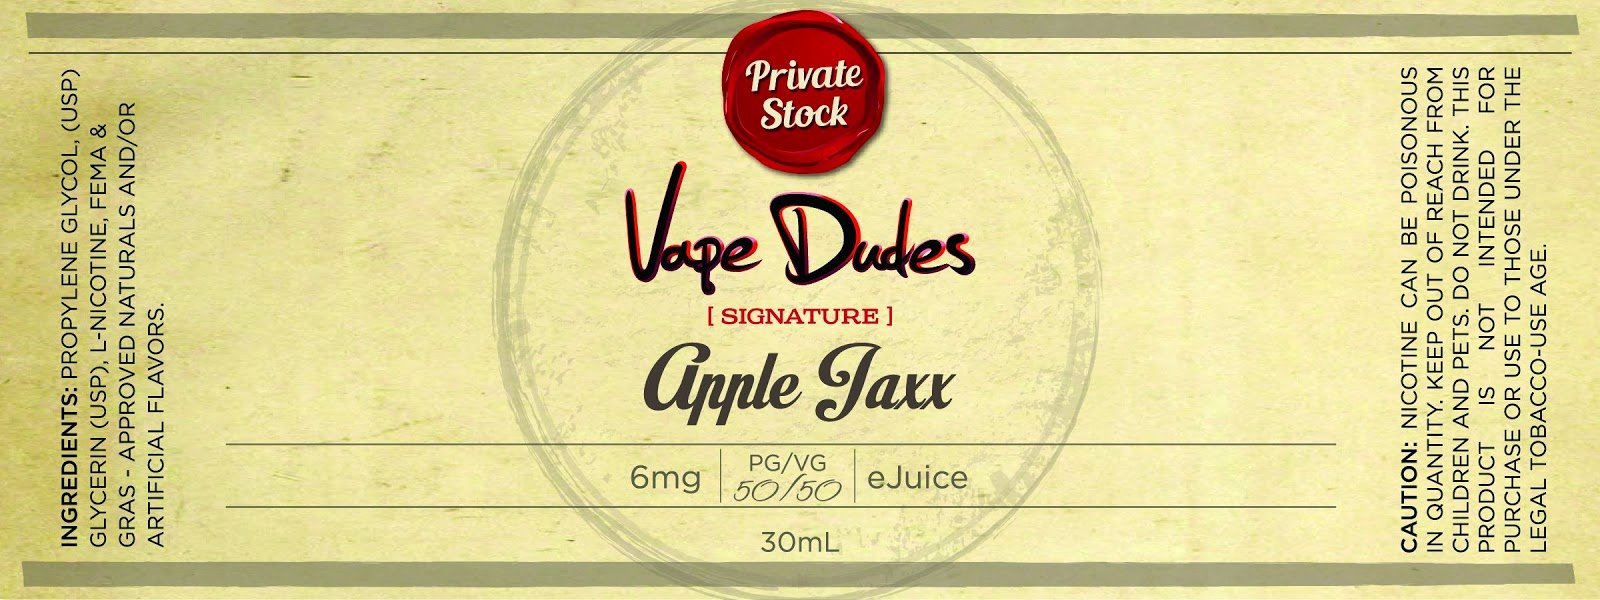 E Juice Label Template Unique E Juice Label Template